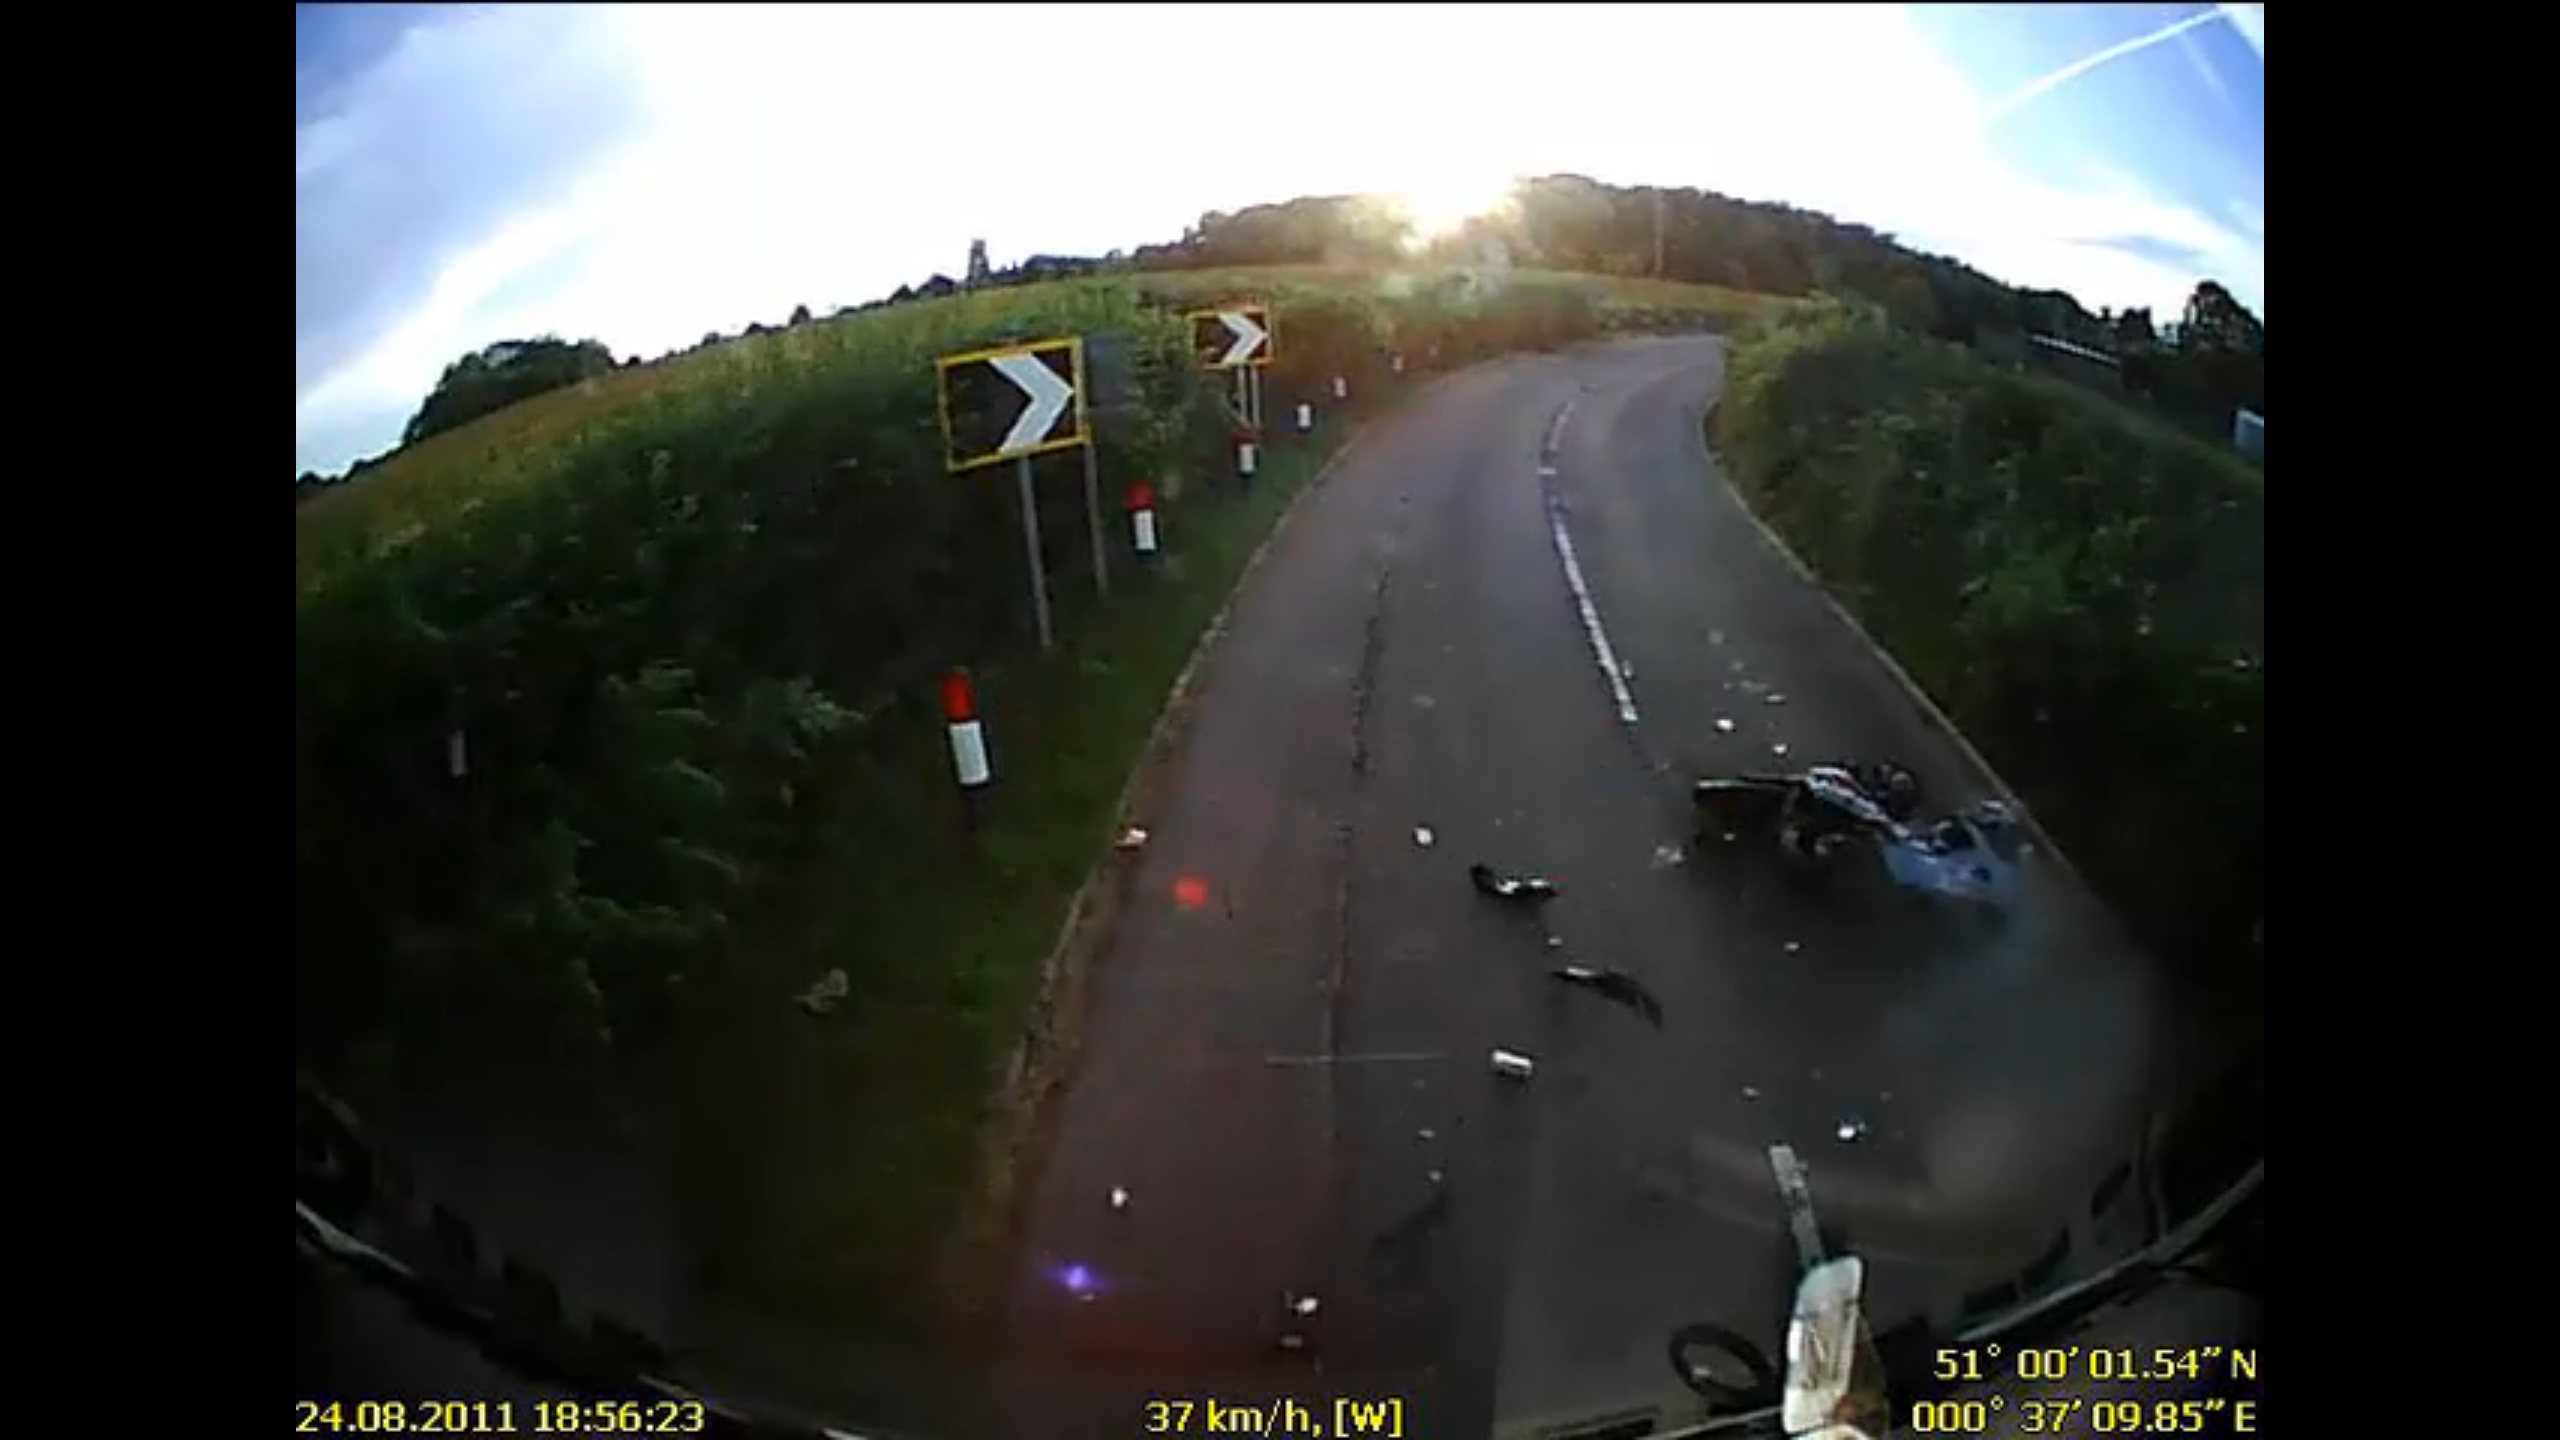 The biker somehow escaped with just a broken shoulder